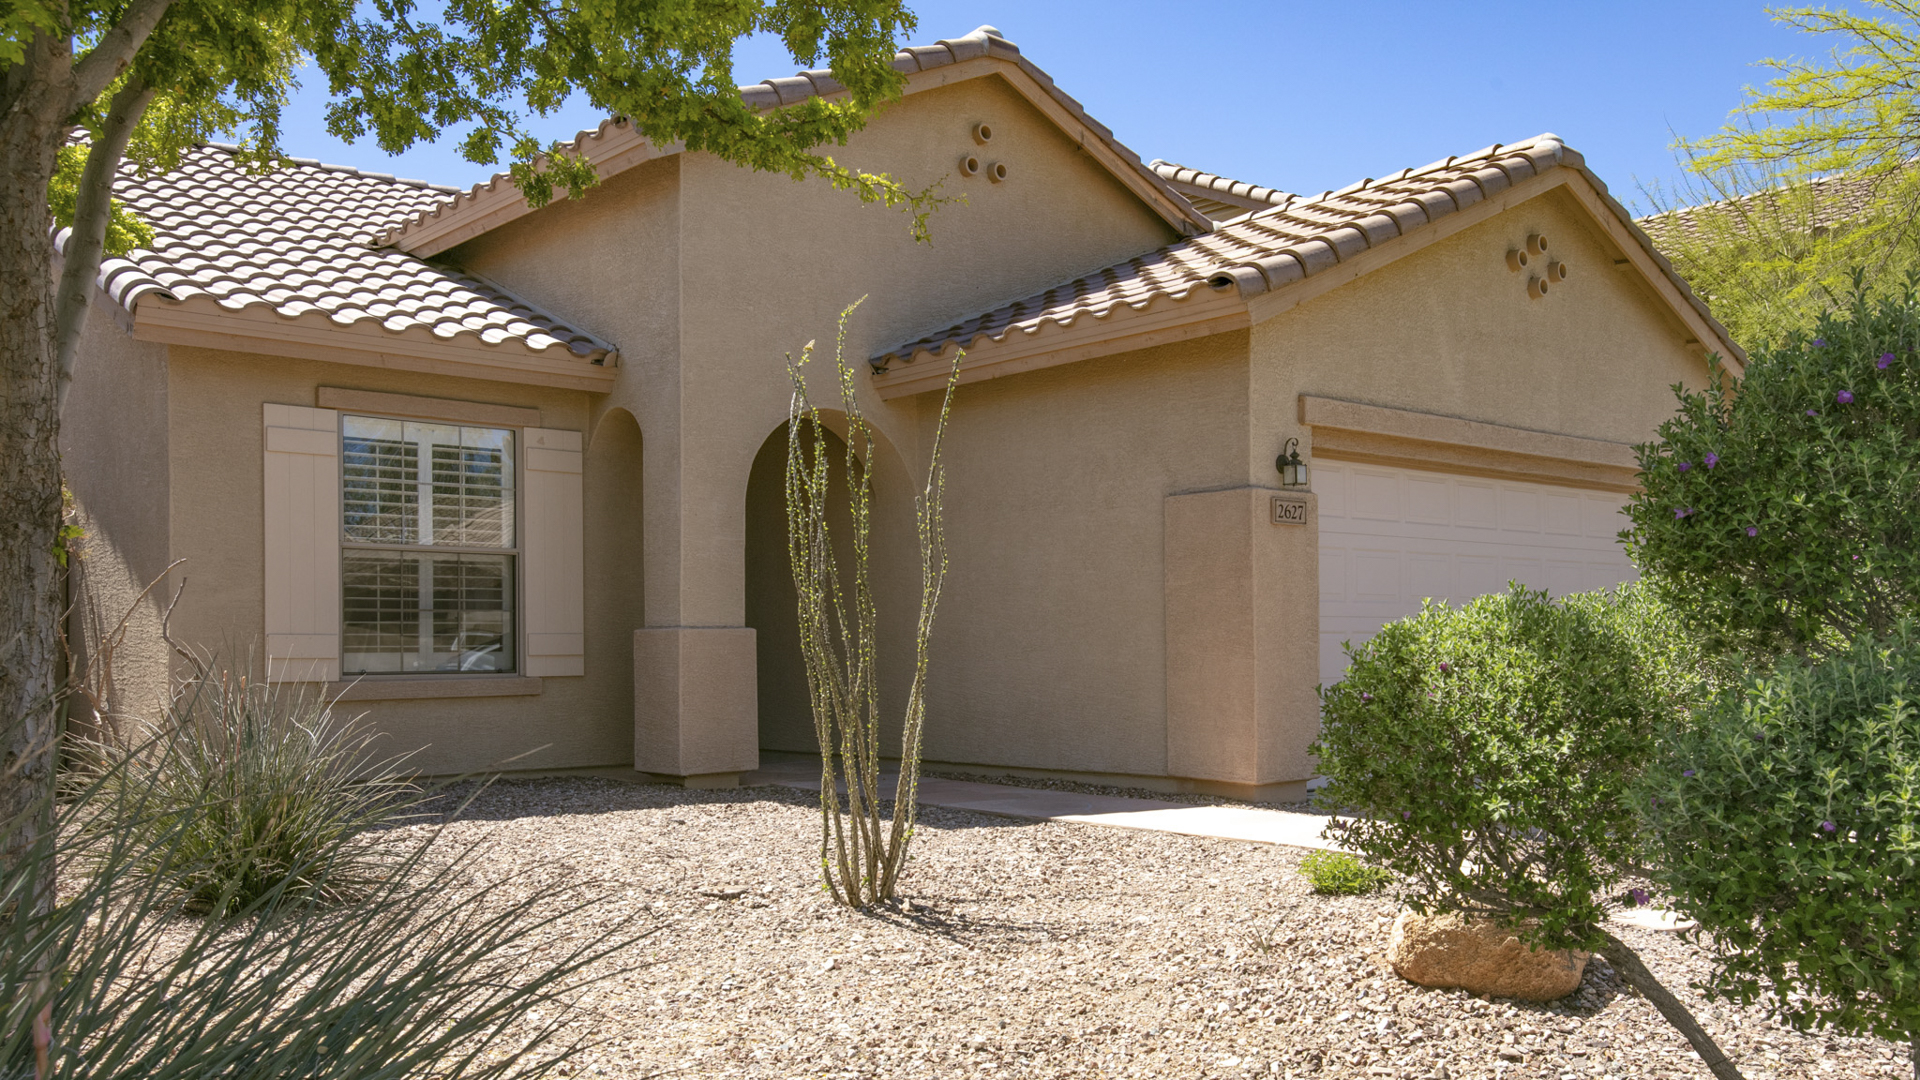 Under Contract! 2627 W Bisbee Way, Anthem, AZ 85086  - Anthem by Del Webb | Amy Jones Group